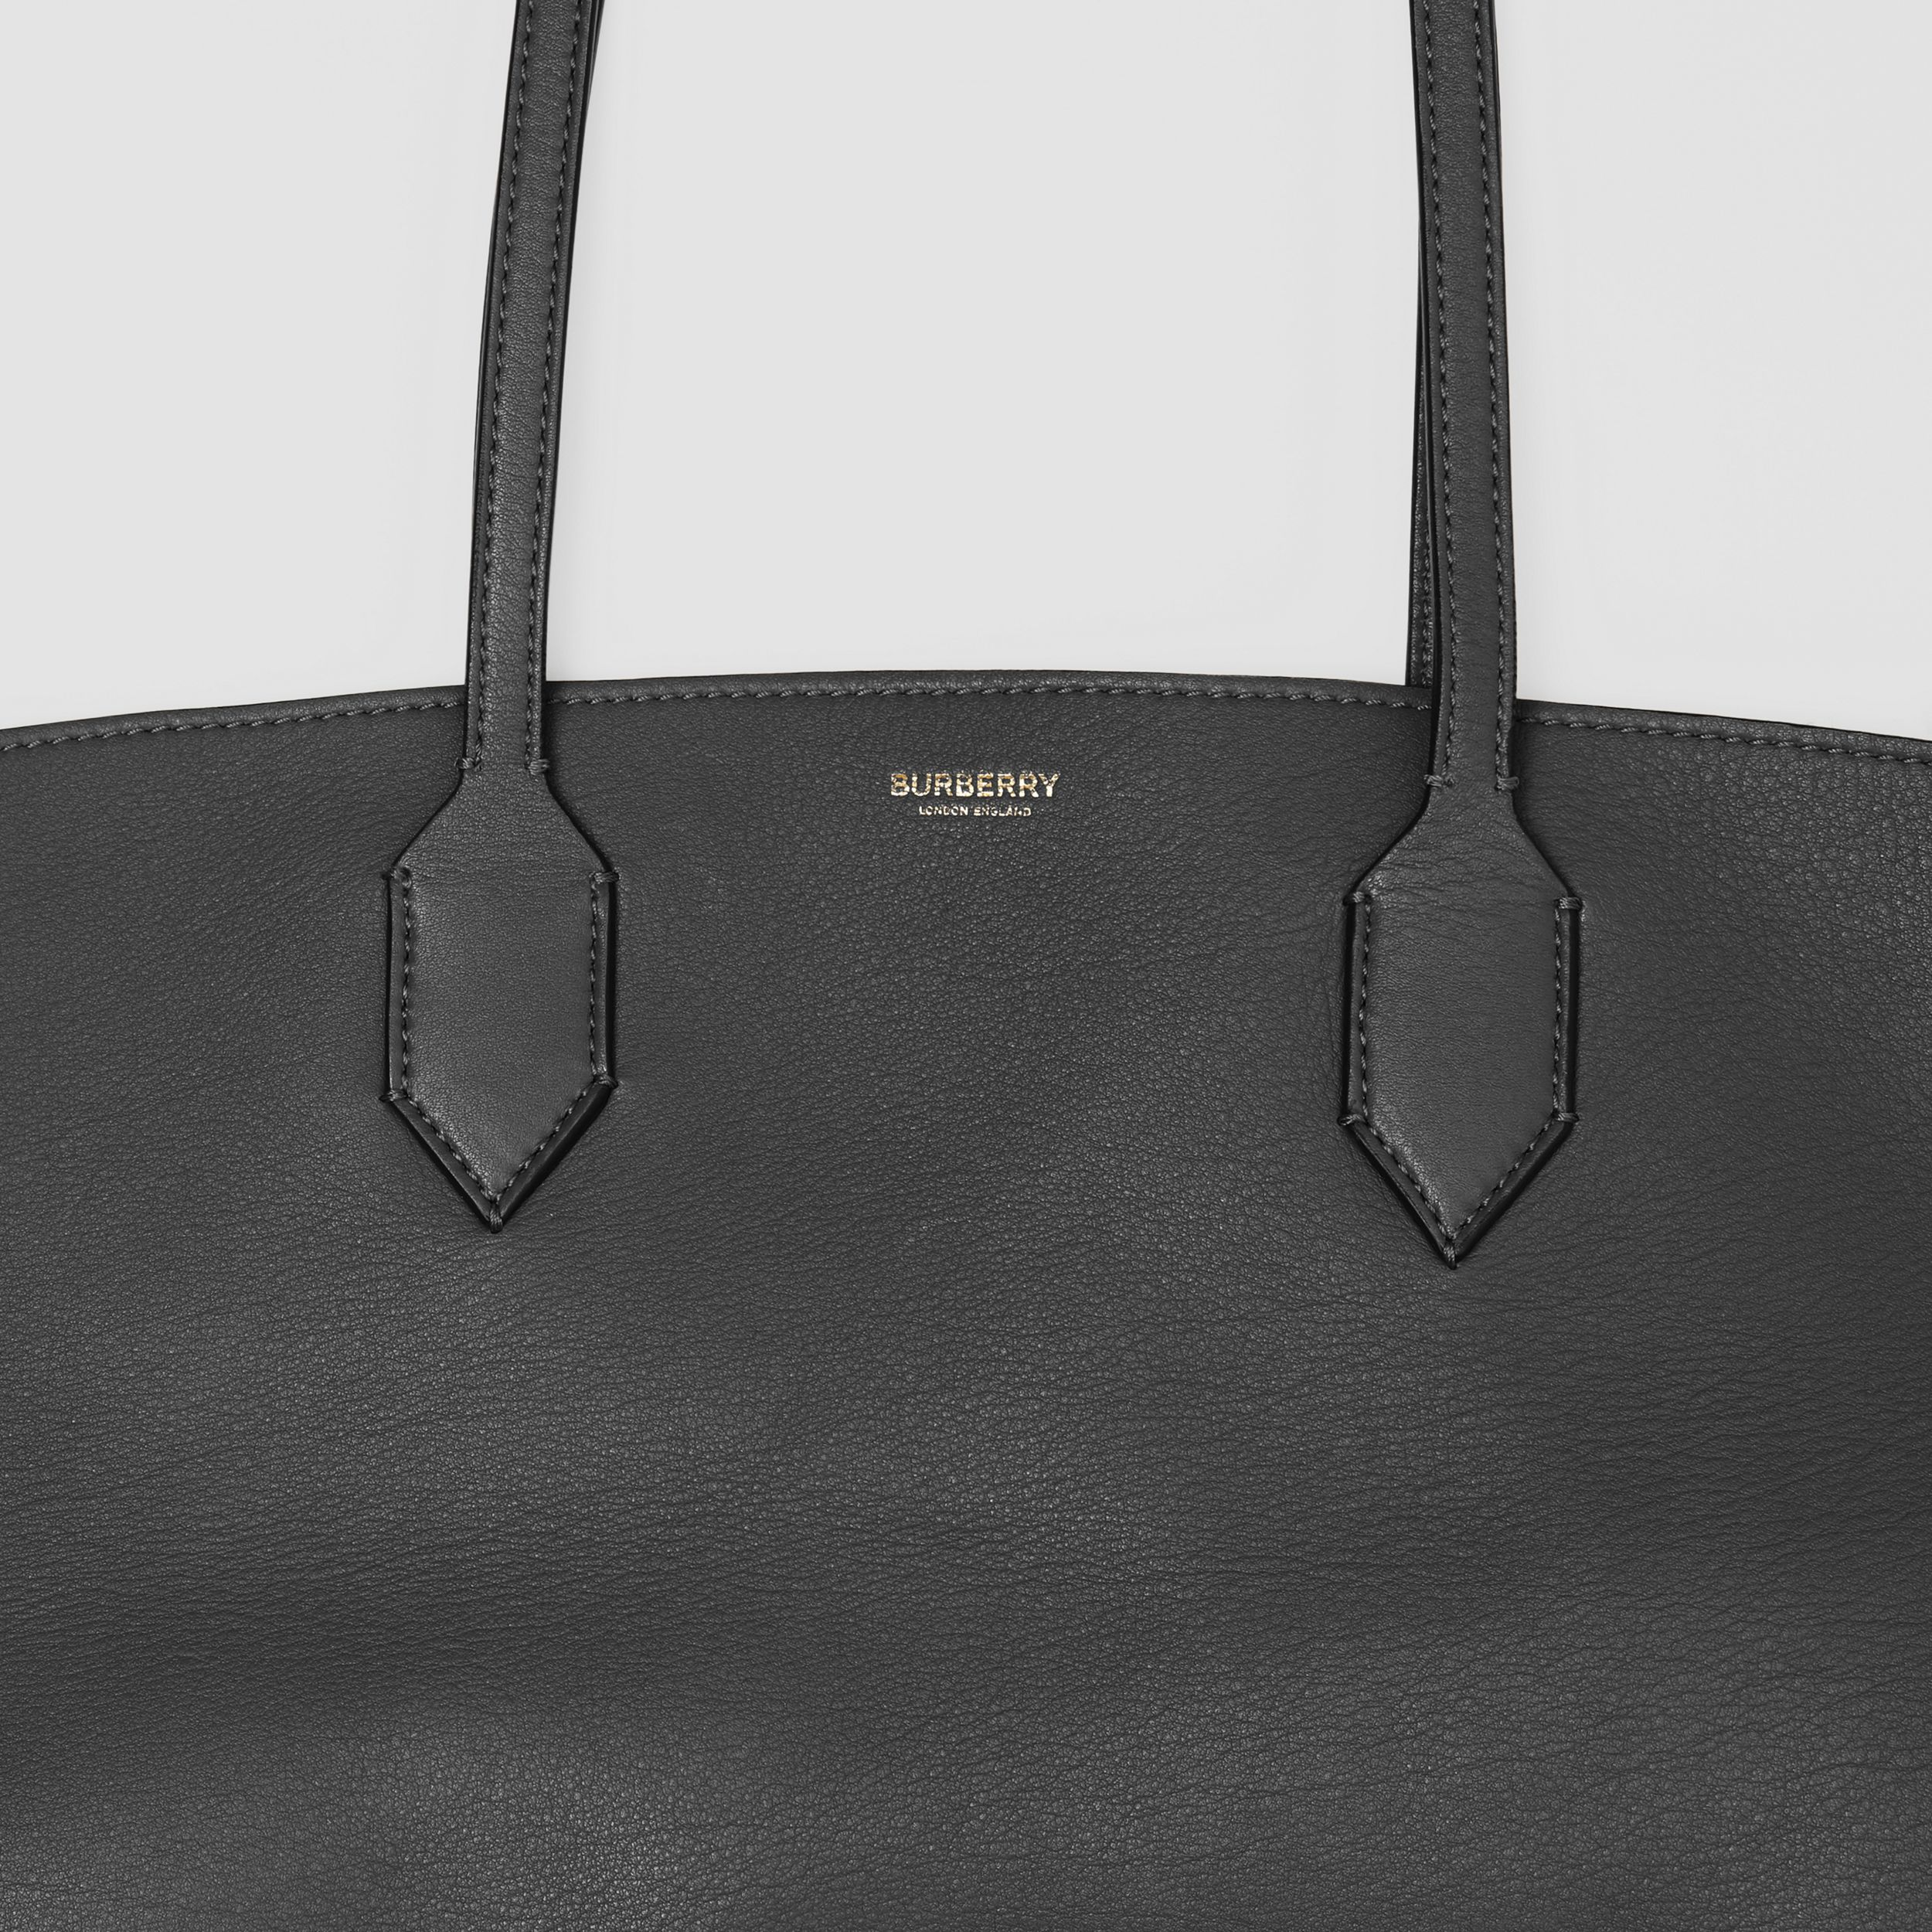 Medium Leather Society Tote in Black - Women | Burberry Canada - 2